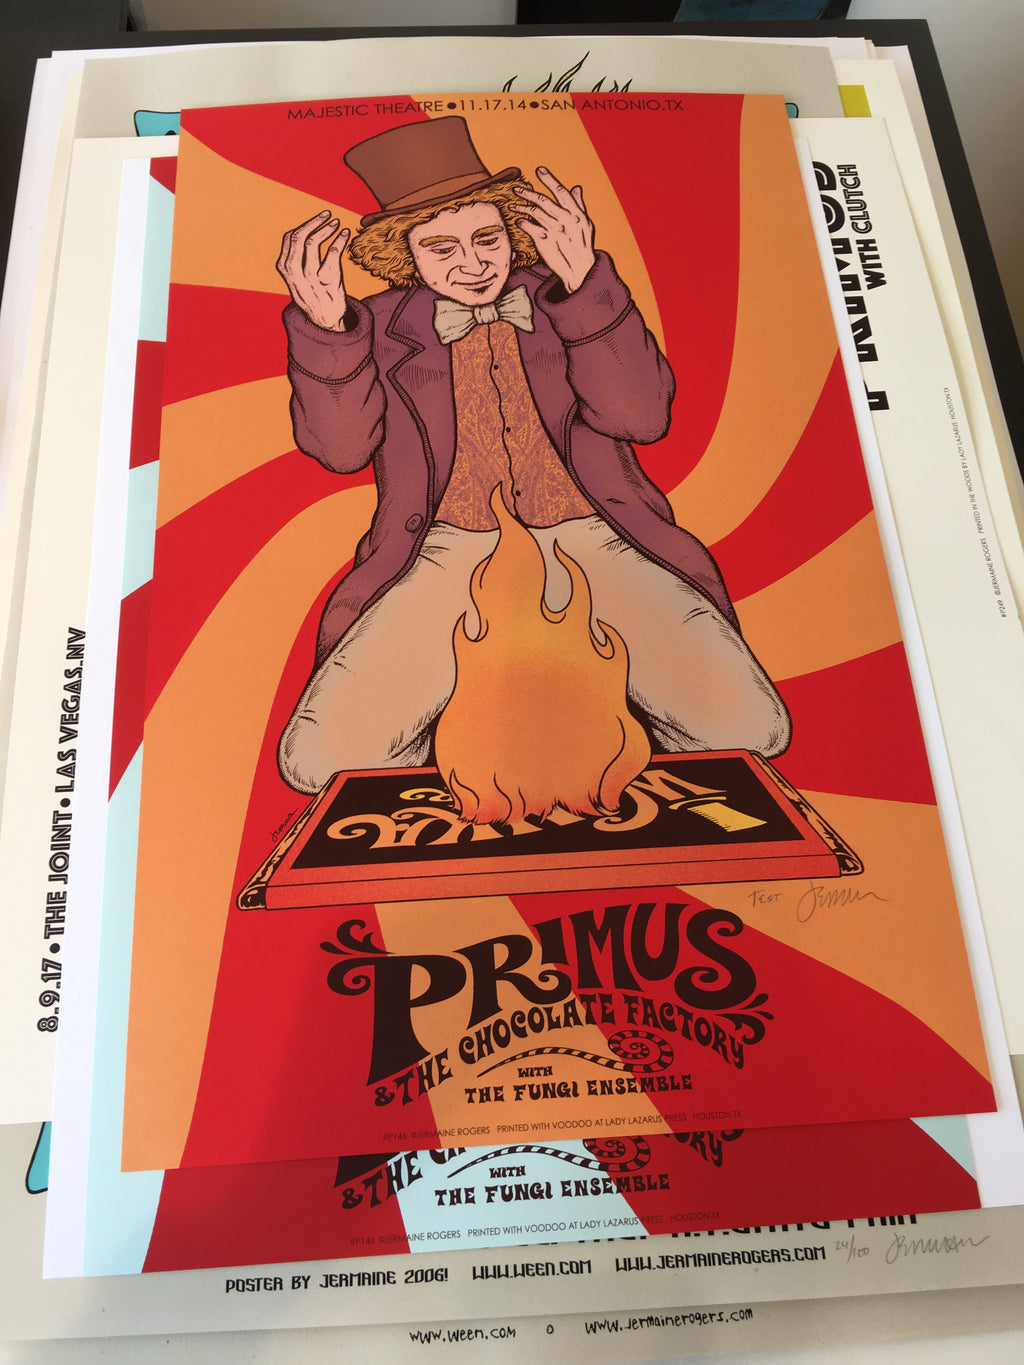 Primus & The Chocolate Factory - San Antonio, TX - 11.17.14 TEST